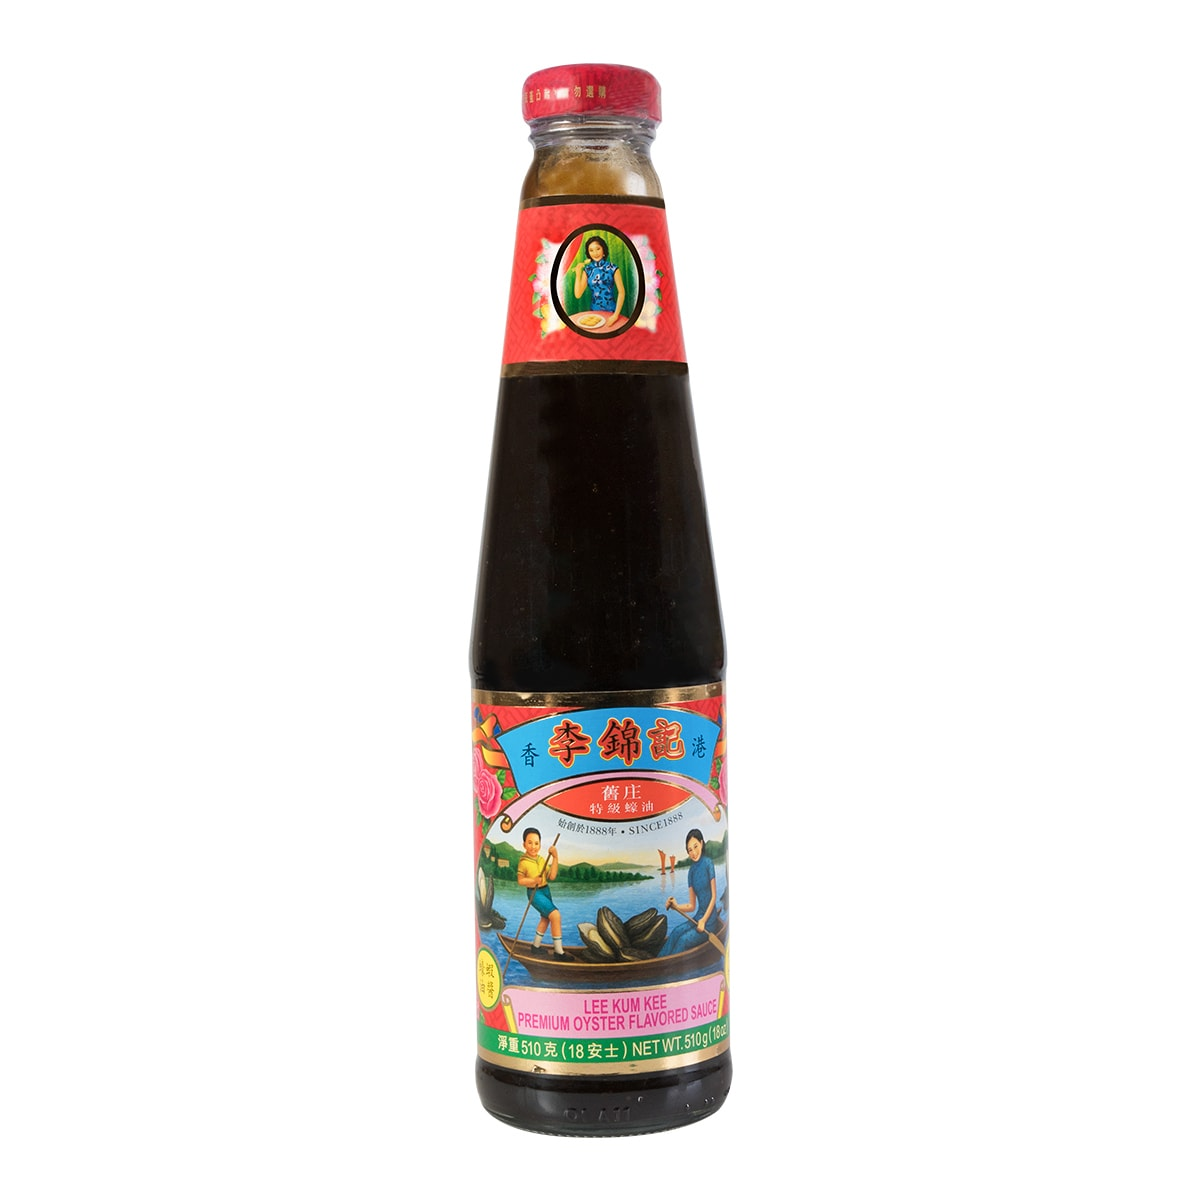 LEE KUM KEE Premium Oyster Flavored Sauce 510g